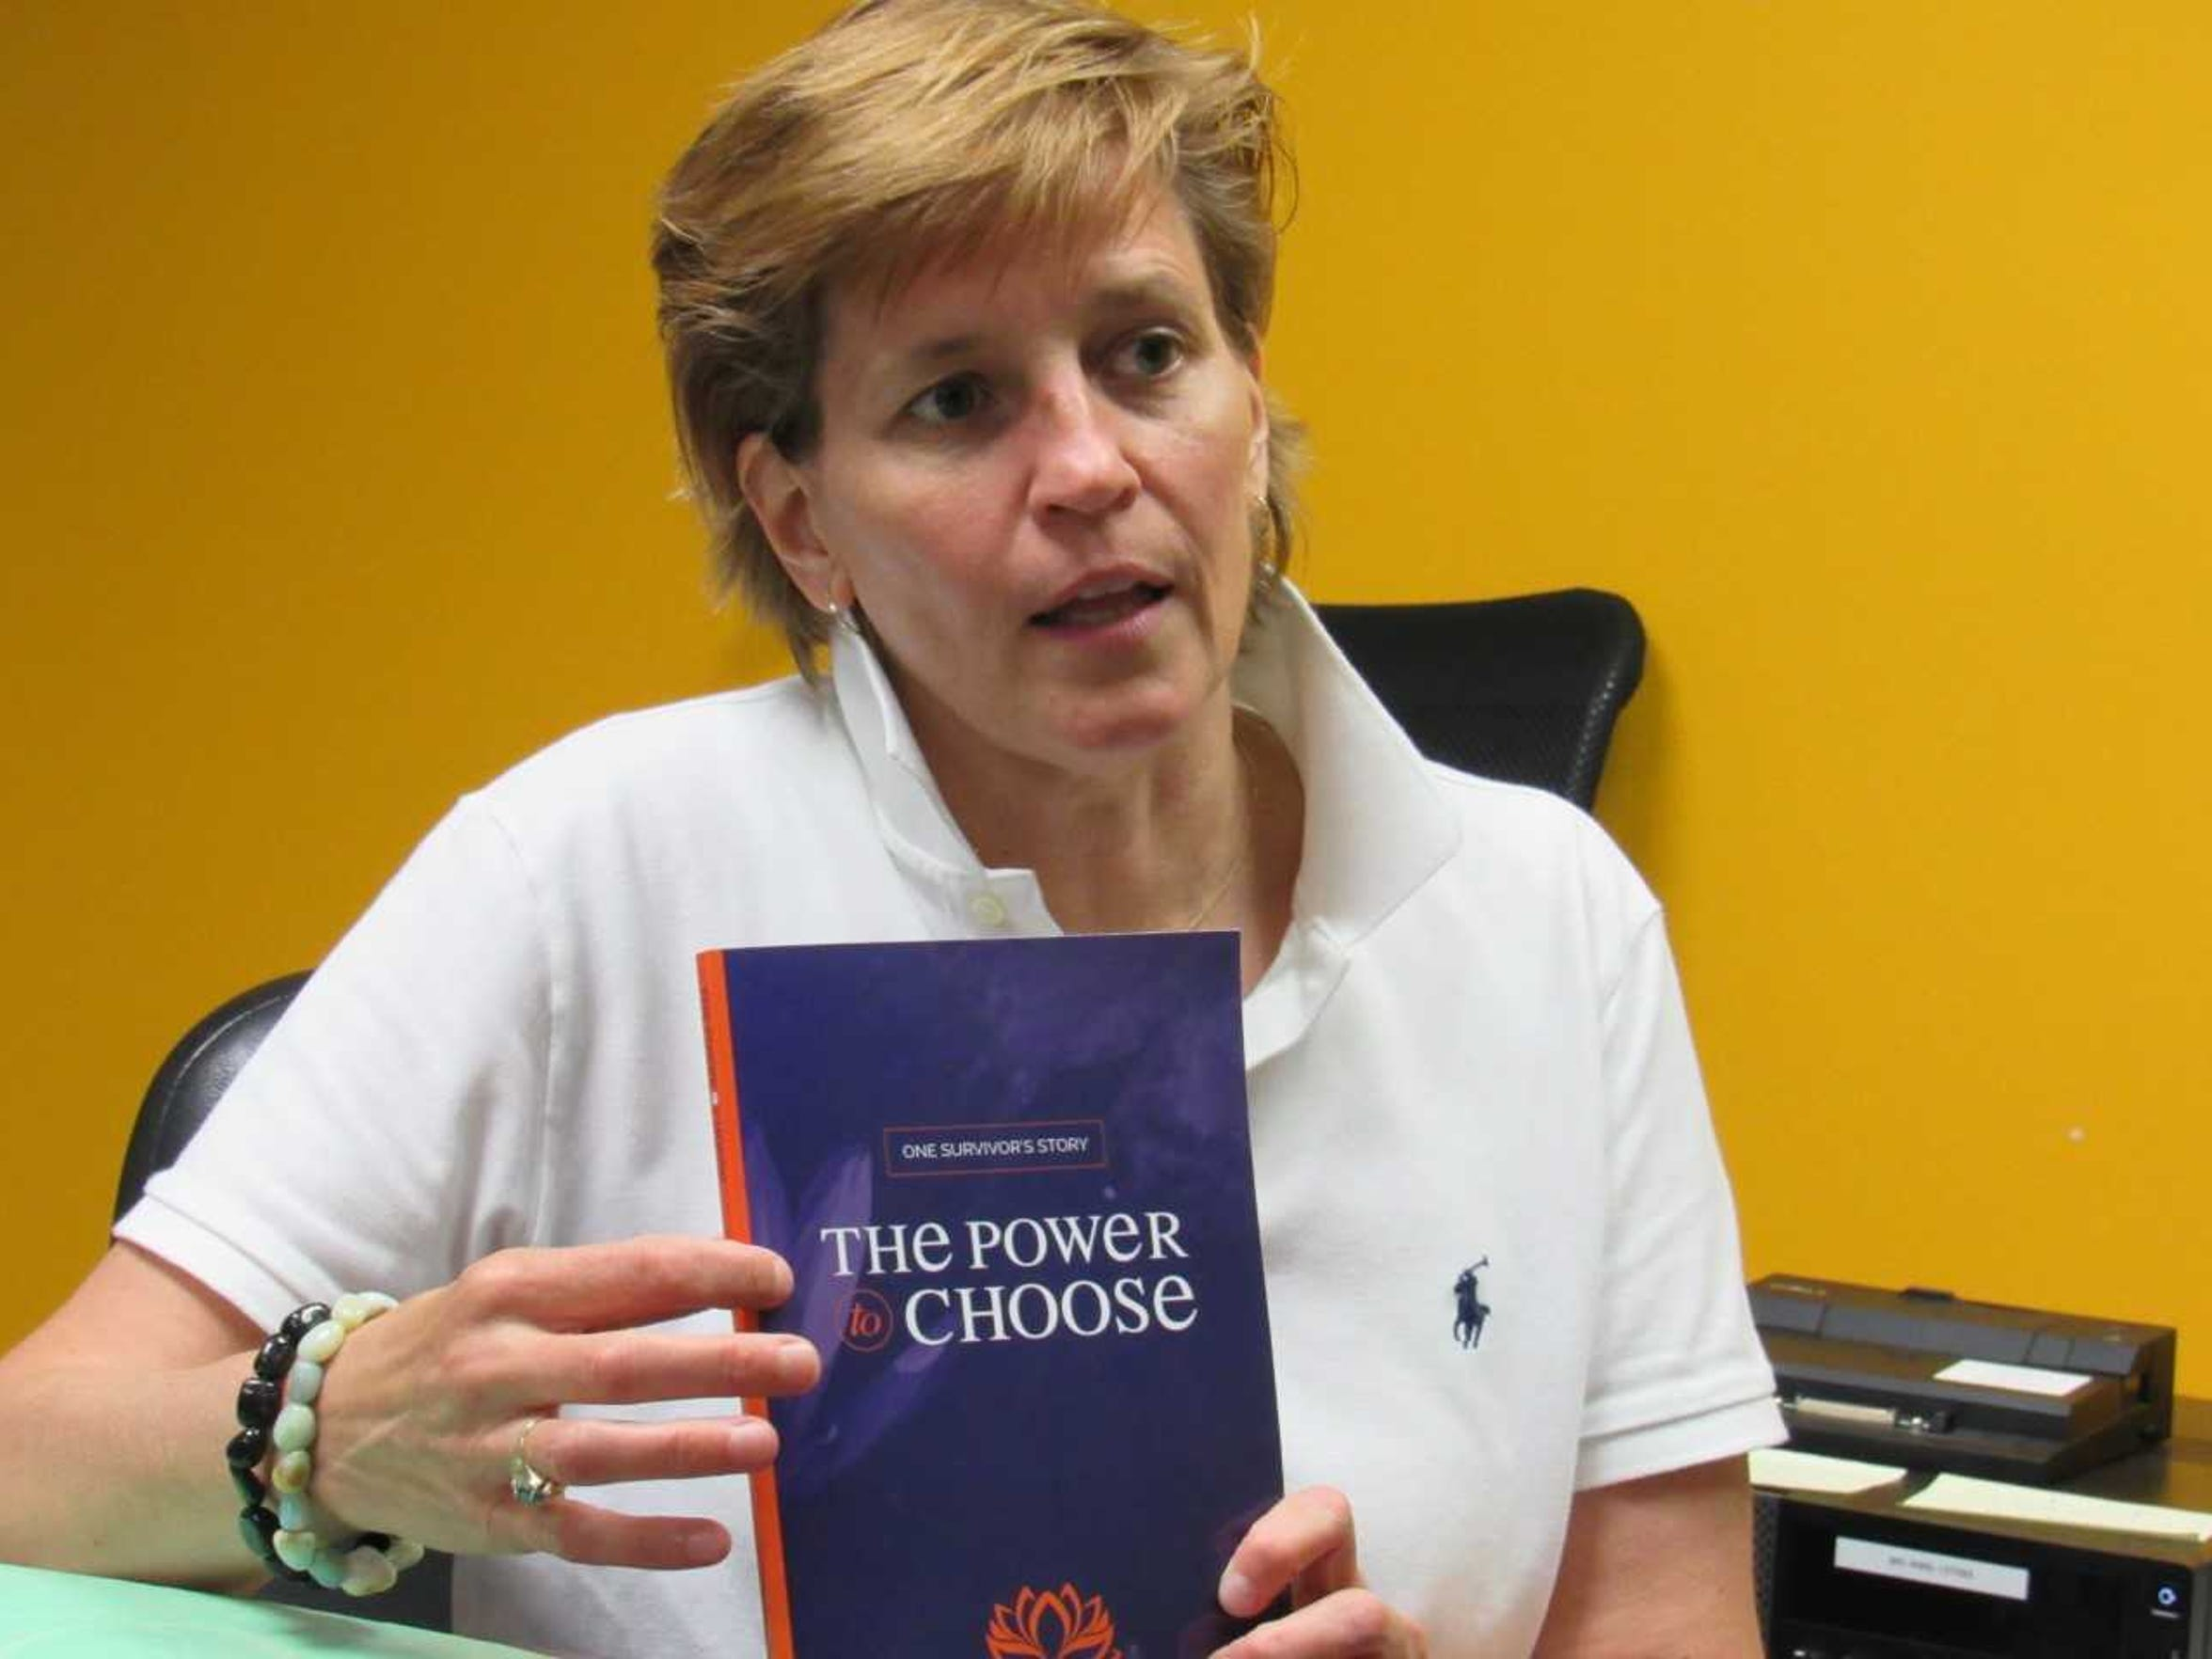 Susan Bisaha posing with her book, which details her accounts of sexual abuse growing up.